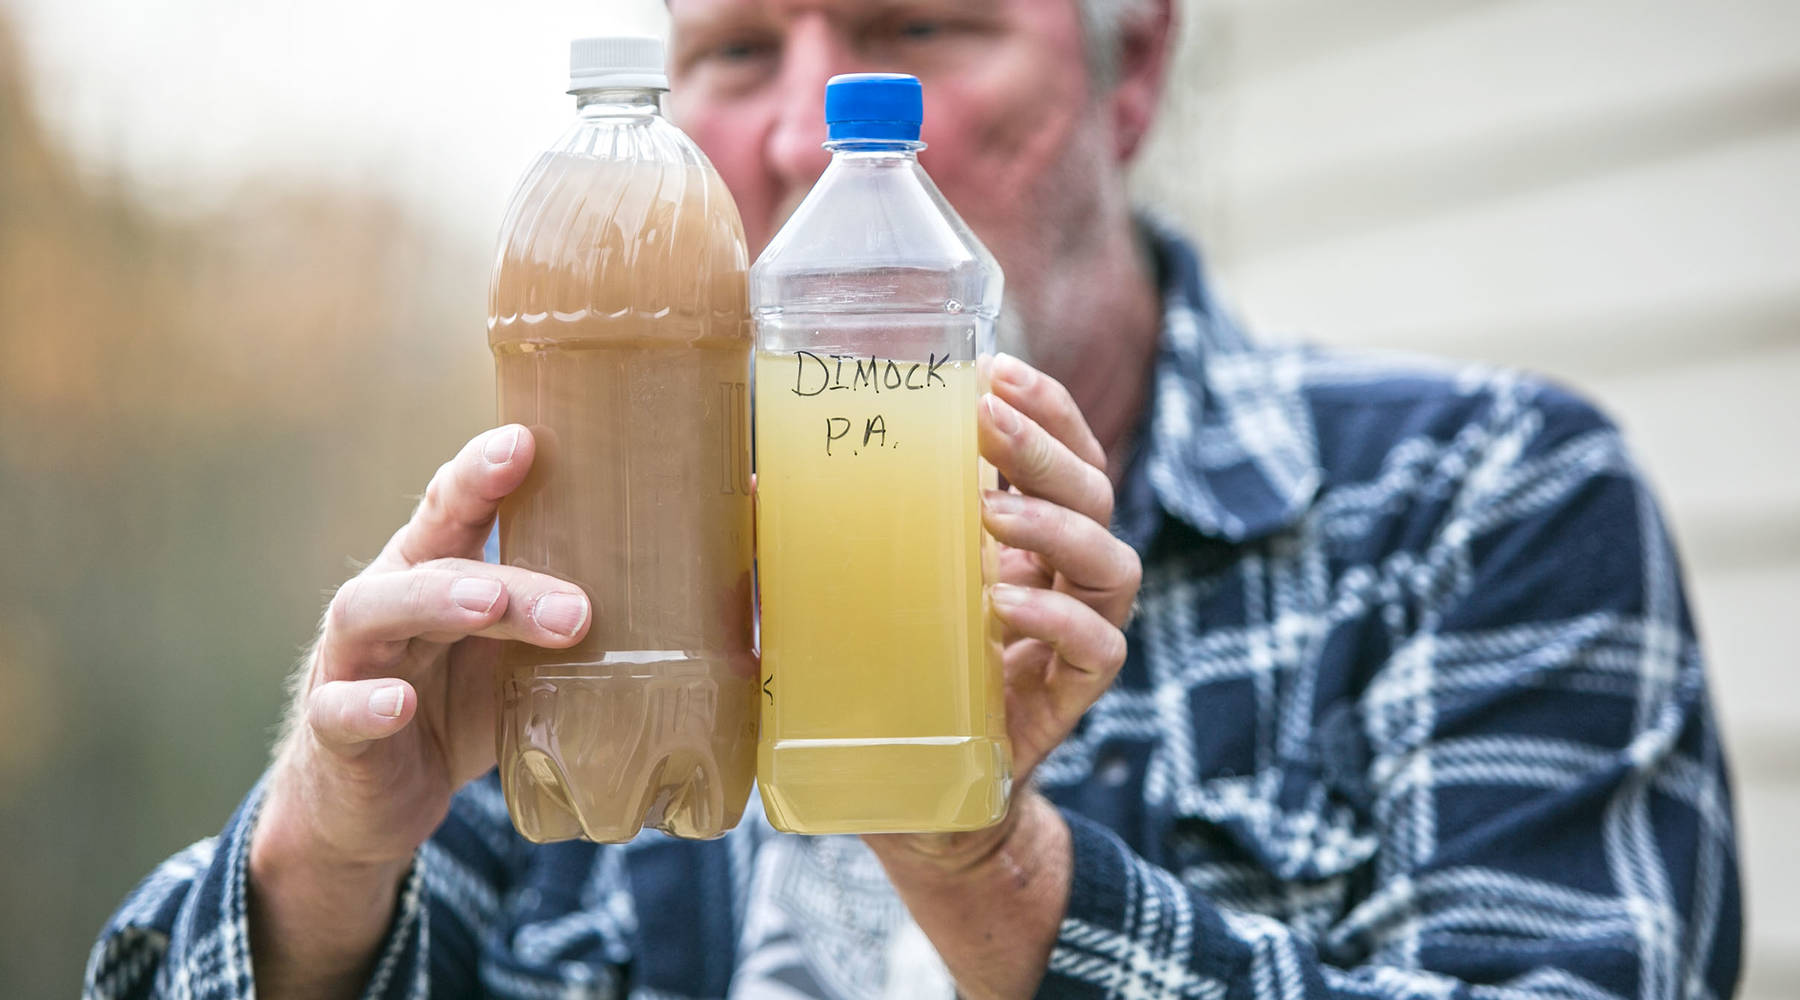 Epa S Late Changes To Fracking Study Downplay Risk Of Drinking Water Pollution Marketplace